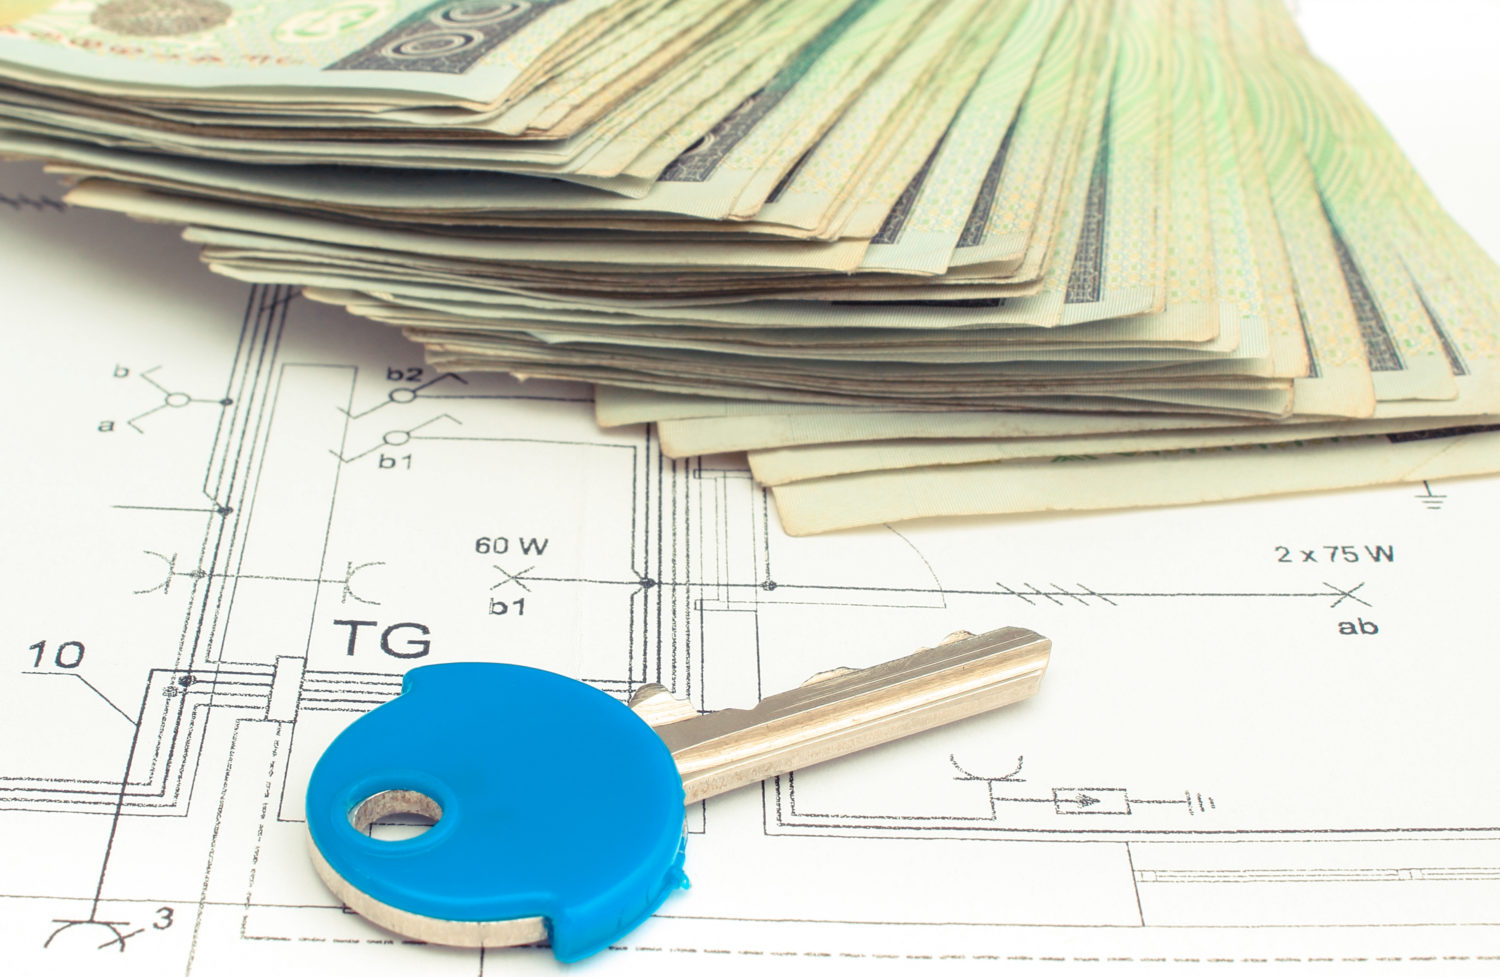 Electrical construction drawings with polish money and home key, building home cost concept